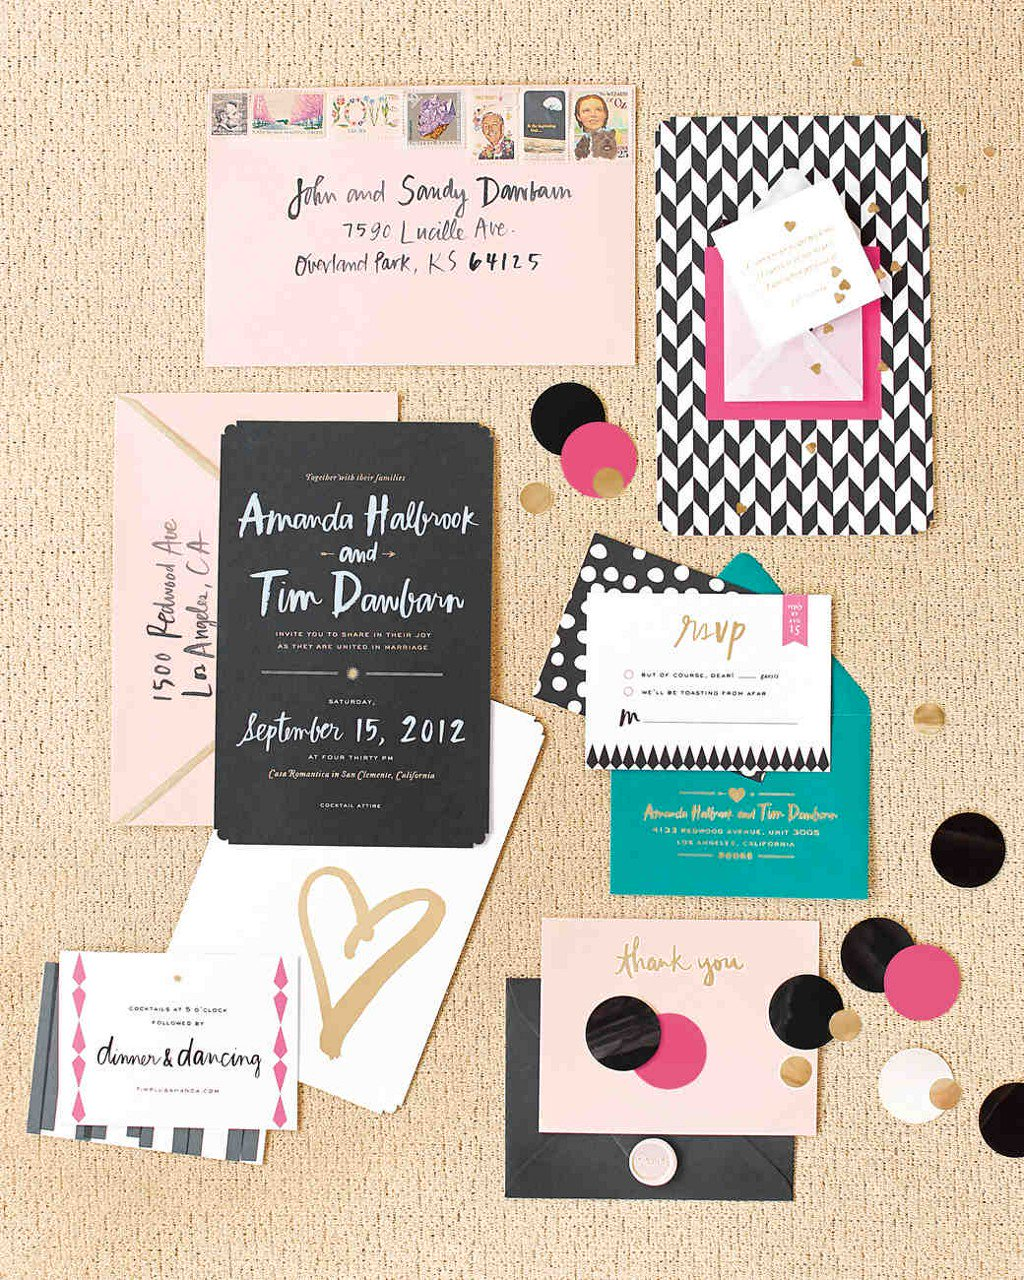 Expert-Approved Wedding Invitation Etiquette Tips https://t.co/oveN3oexaC https://t.co/pFJRfw2G67